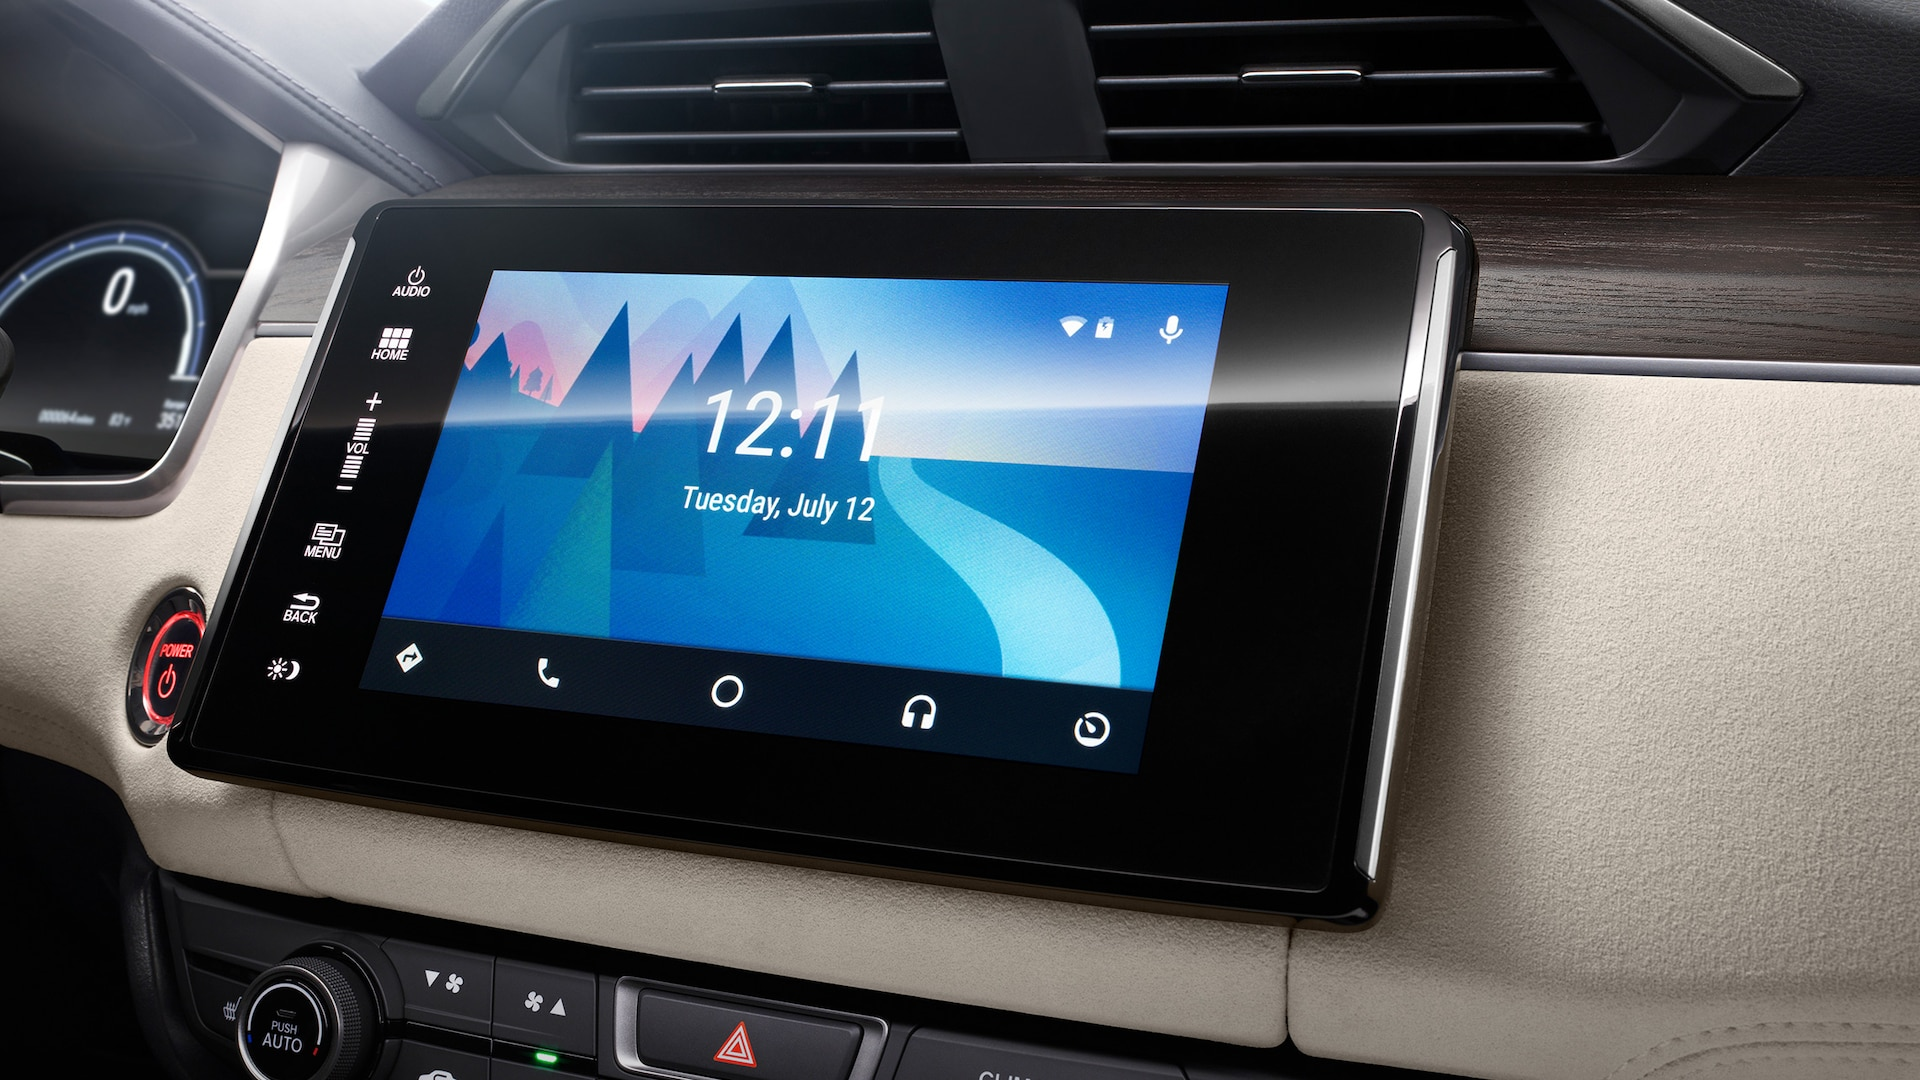 Android Auto™ integration on Display Audio touch-screen in the 2020 Clarity Plug-In Hybrid.